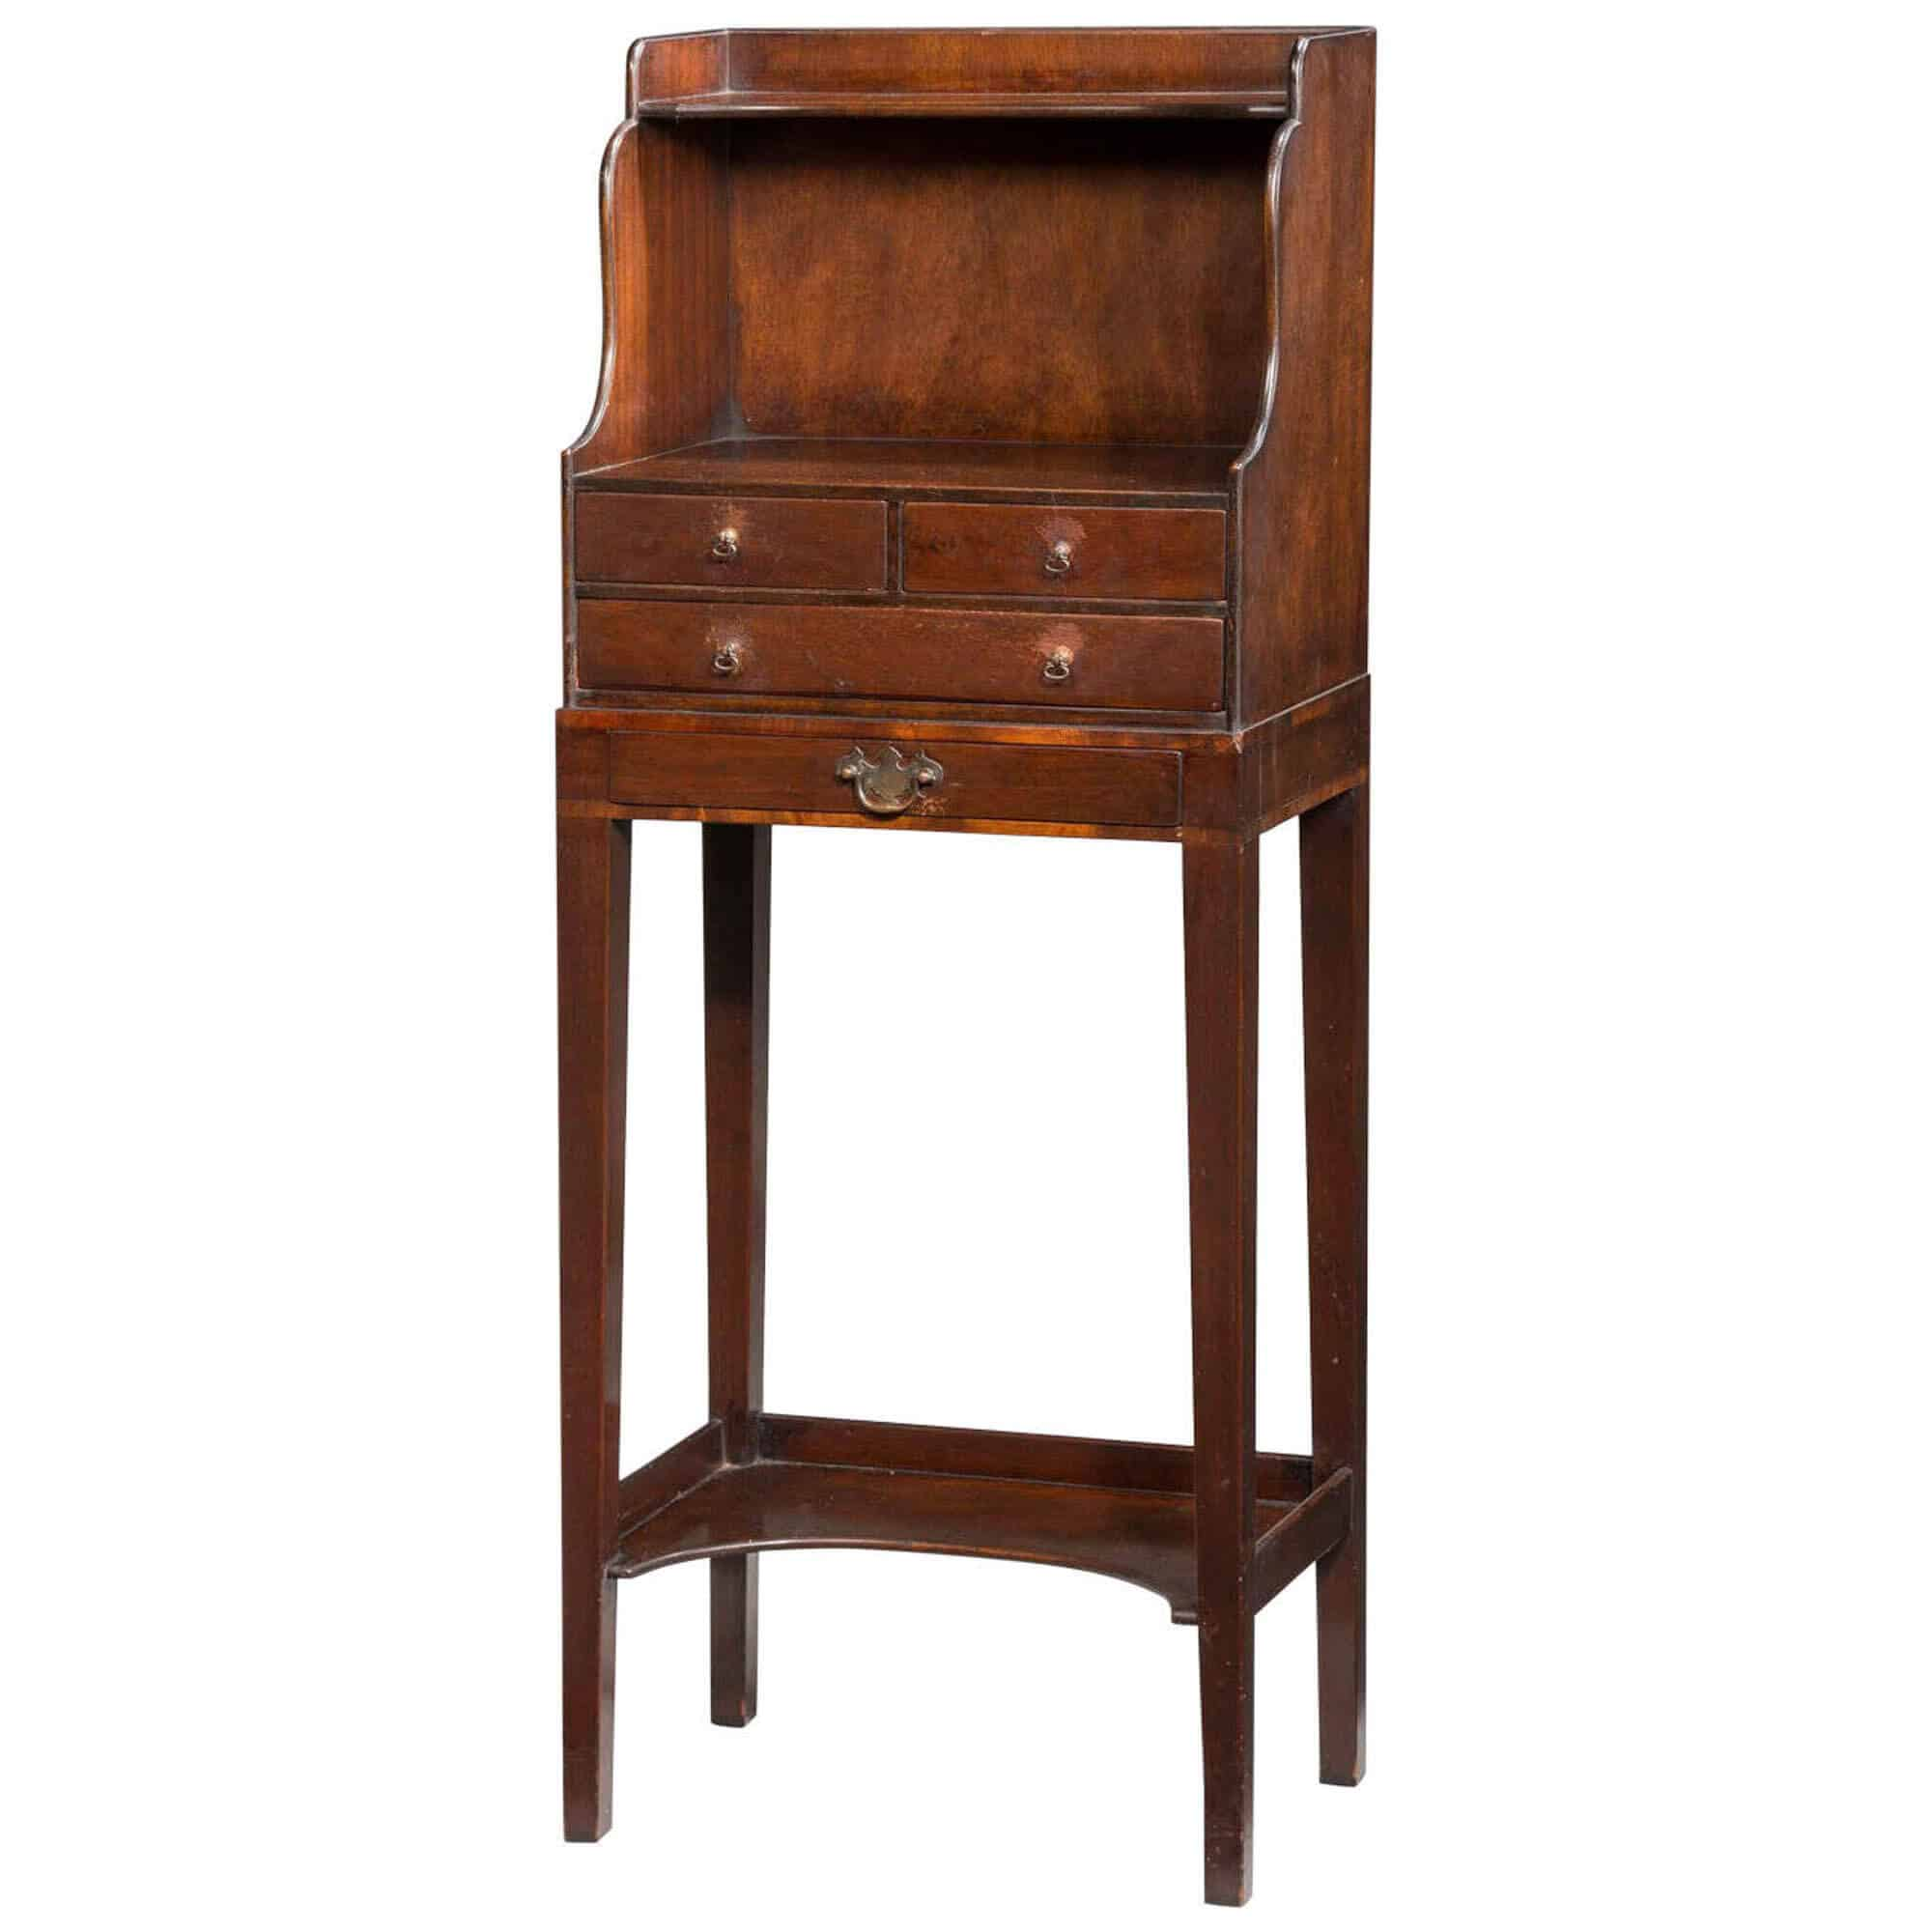 Awesome Classic Cheveret Desk